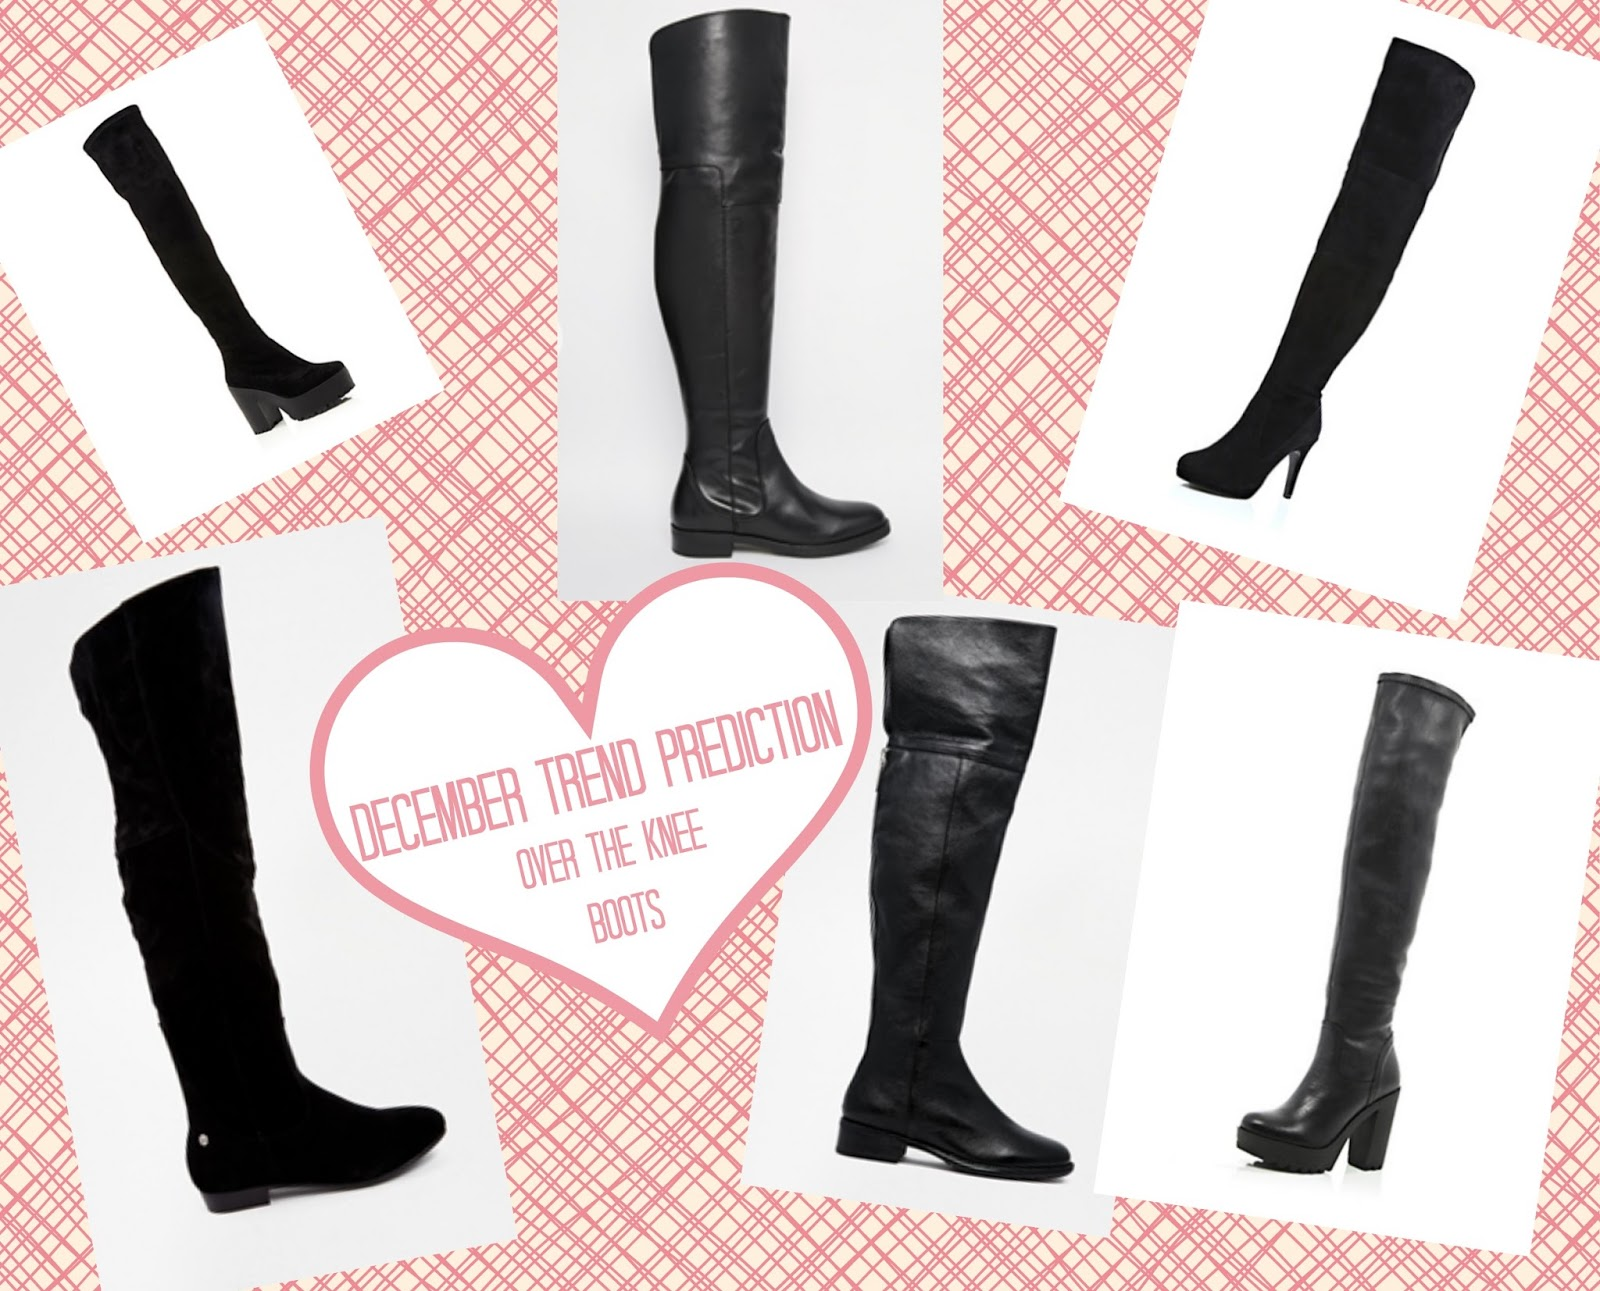 December Trend Prediction Over the Knee Boots